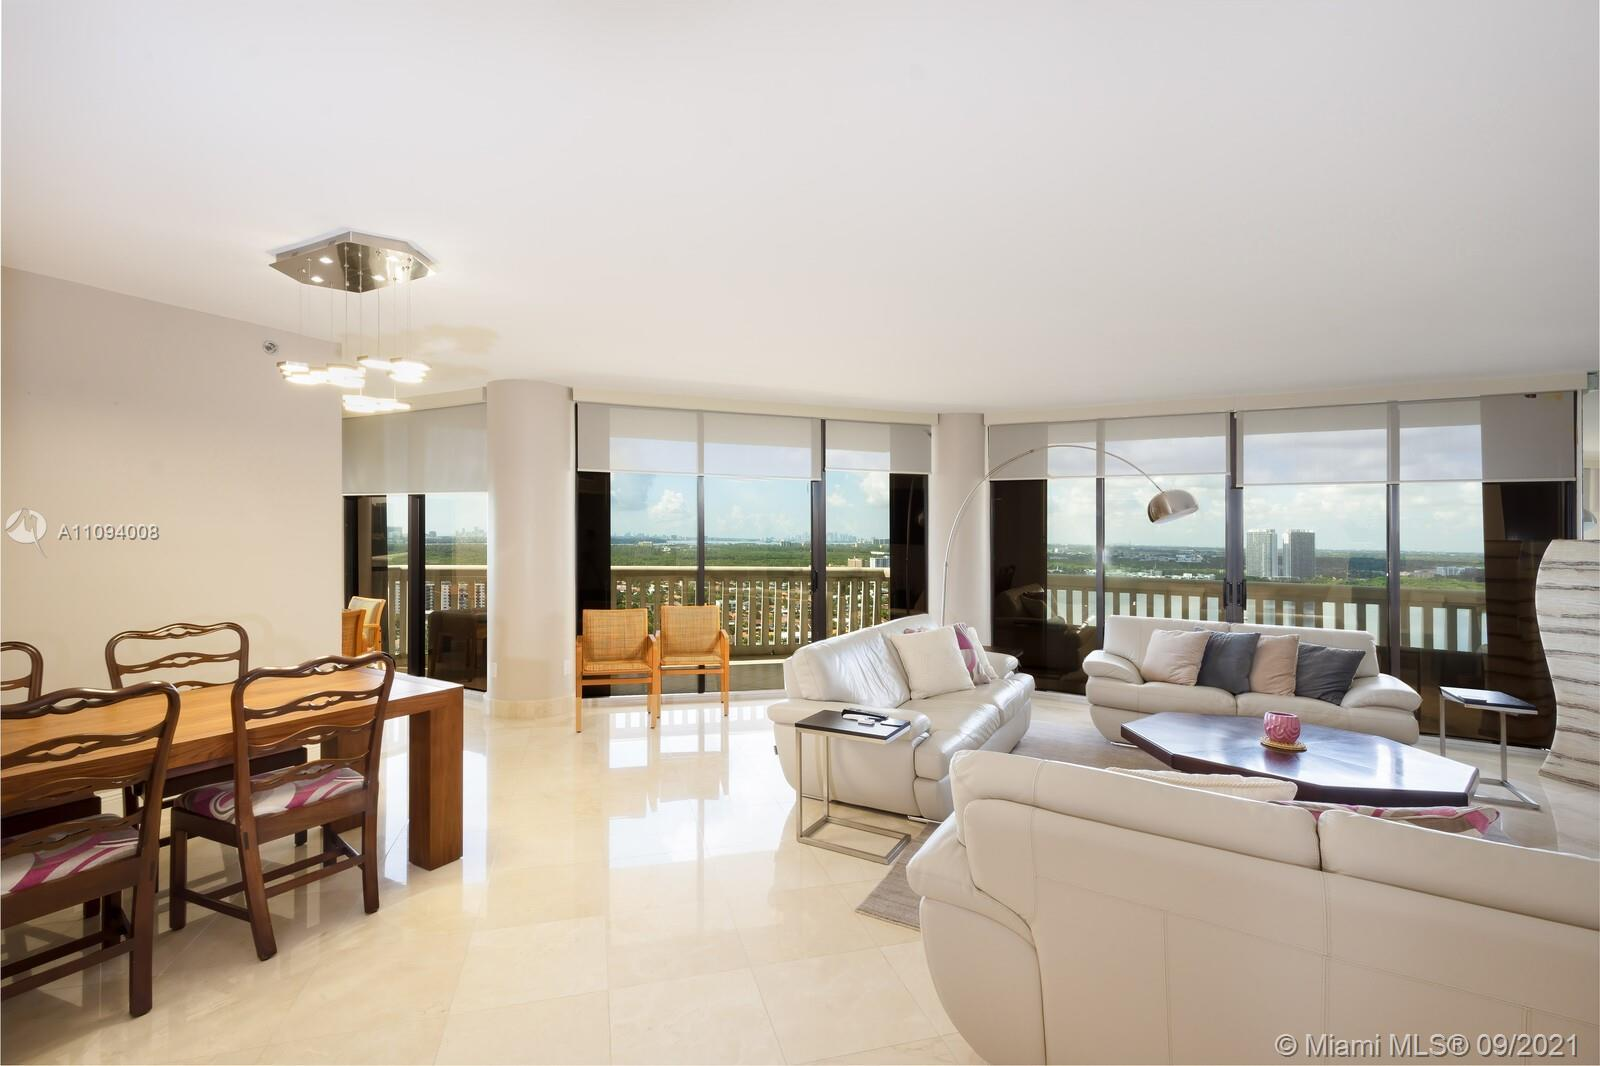 Williams Island 2000 Tower -  High Floor Two bedroom Two and half baths over 1800sqft with Intracoas